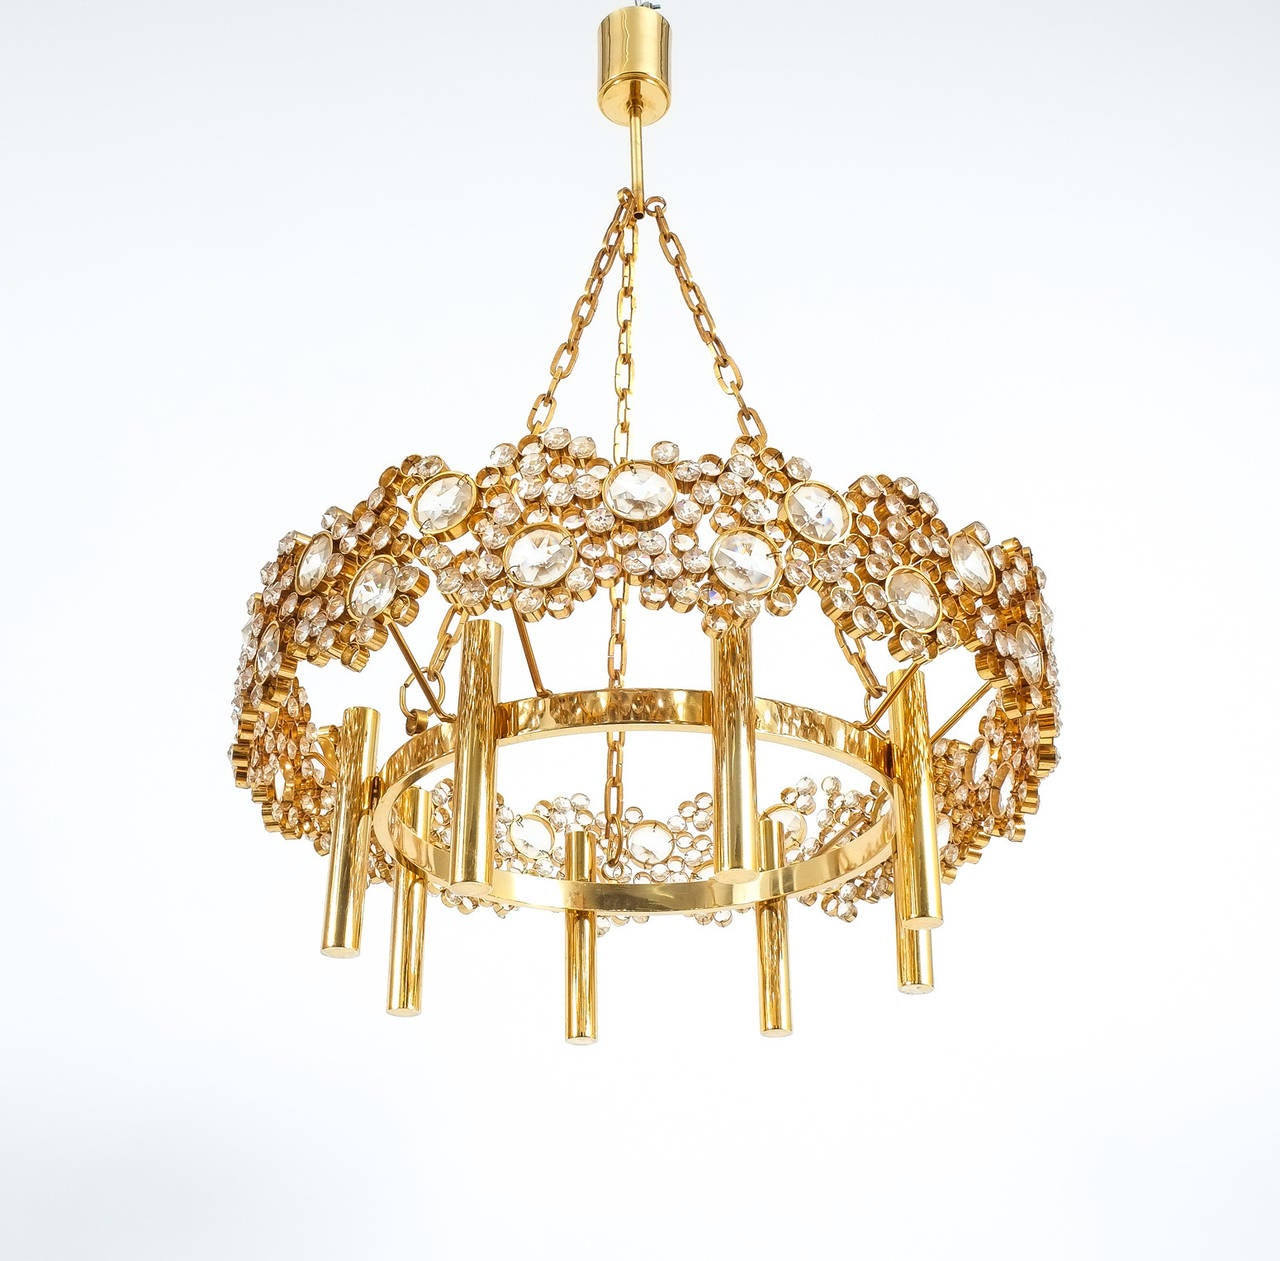 Beautiful 21 inch Corona chandelier from the 1960's by Palwa. Handcrafted and executed with great attention to detail this chandelier consists of hundreds of gilded brass rings encrusted with crystal glass varying in size. The light takes 8 bulbs